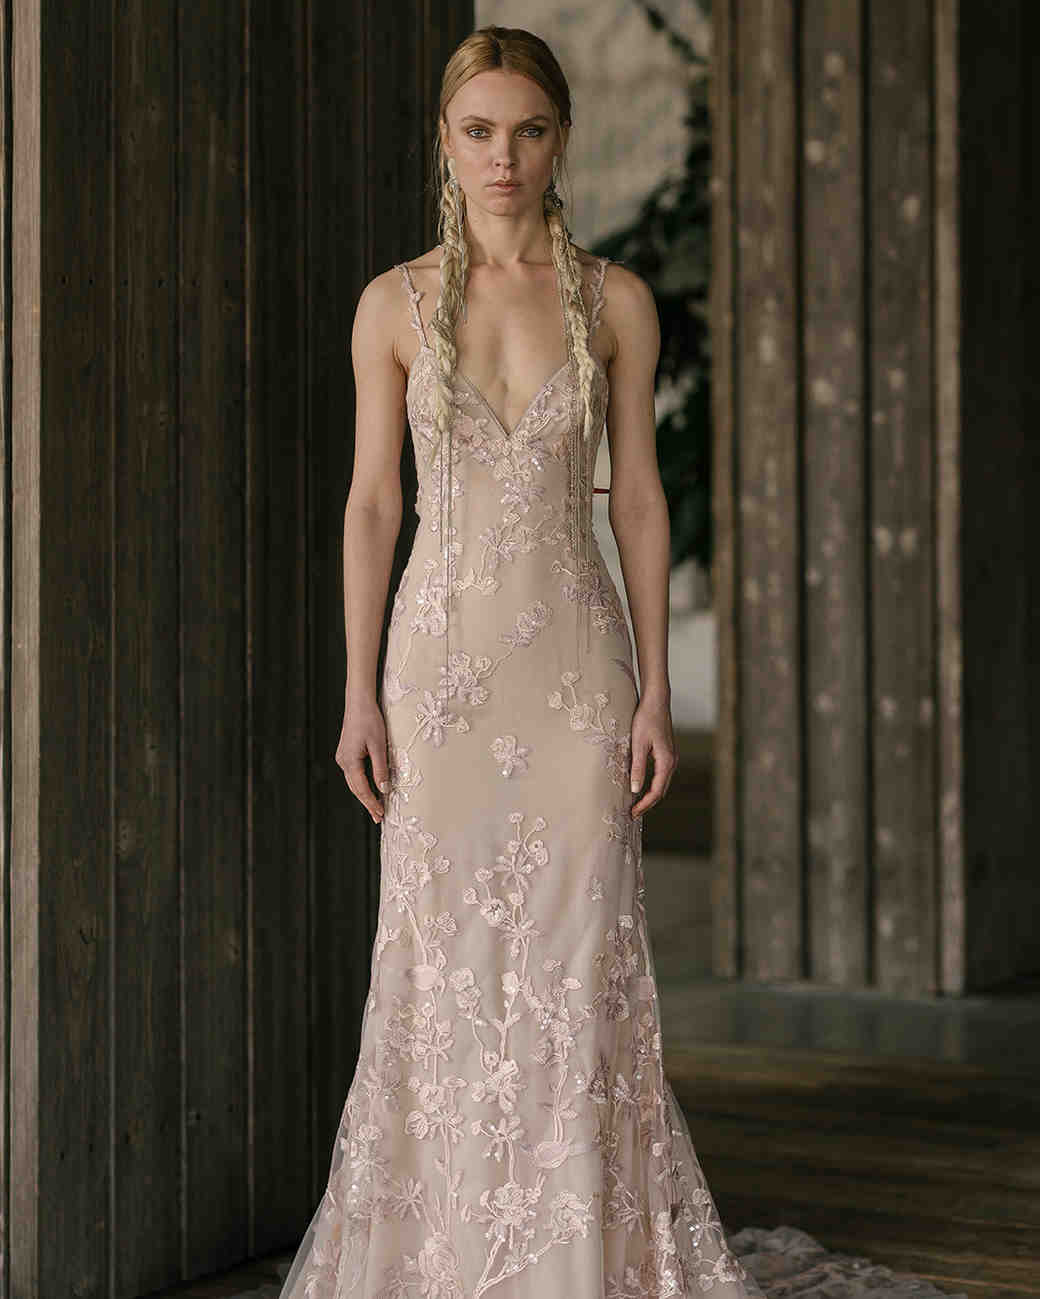 rivini by rita vinieris spring 2019 nude sheath wedding dress with floral appliqués